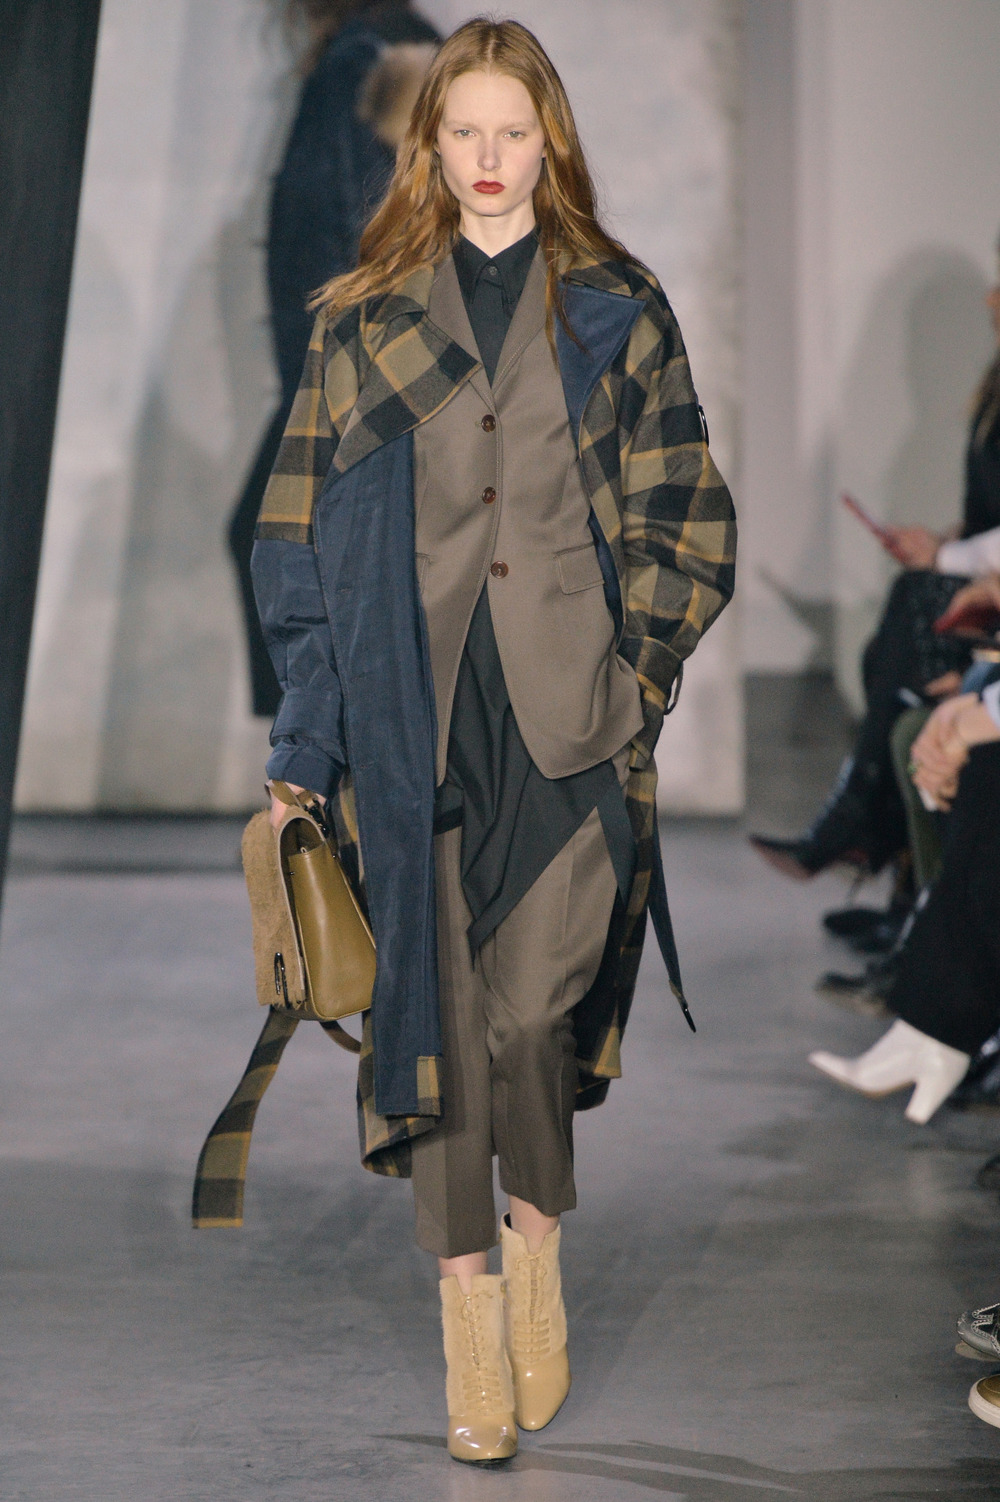 wgsn :   Layers on layers on layers are lending bespoke suiting a street edge at the @31philliplim #NYFW #AW15 show